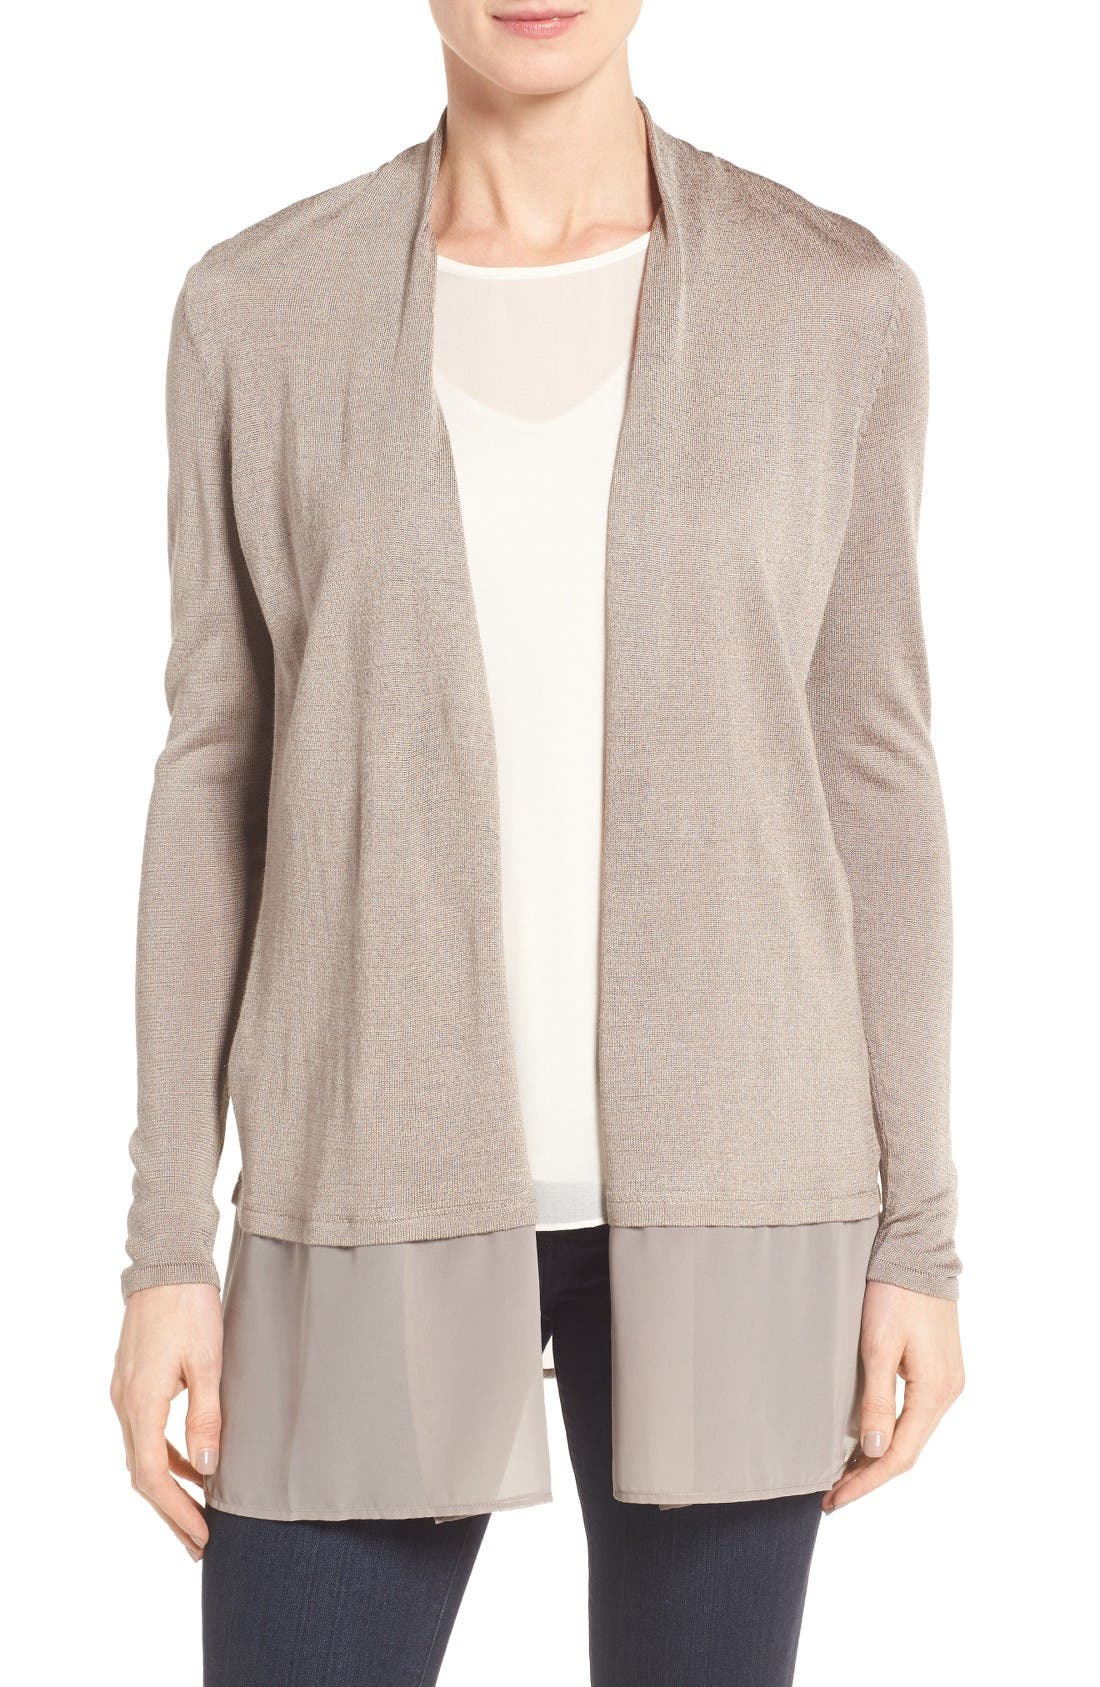 Chiffon Trim Cardigan,                         Main,                         color, Mushroom